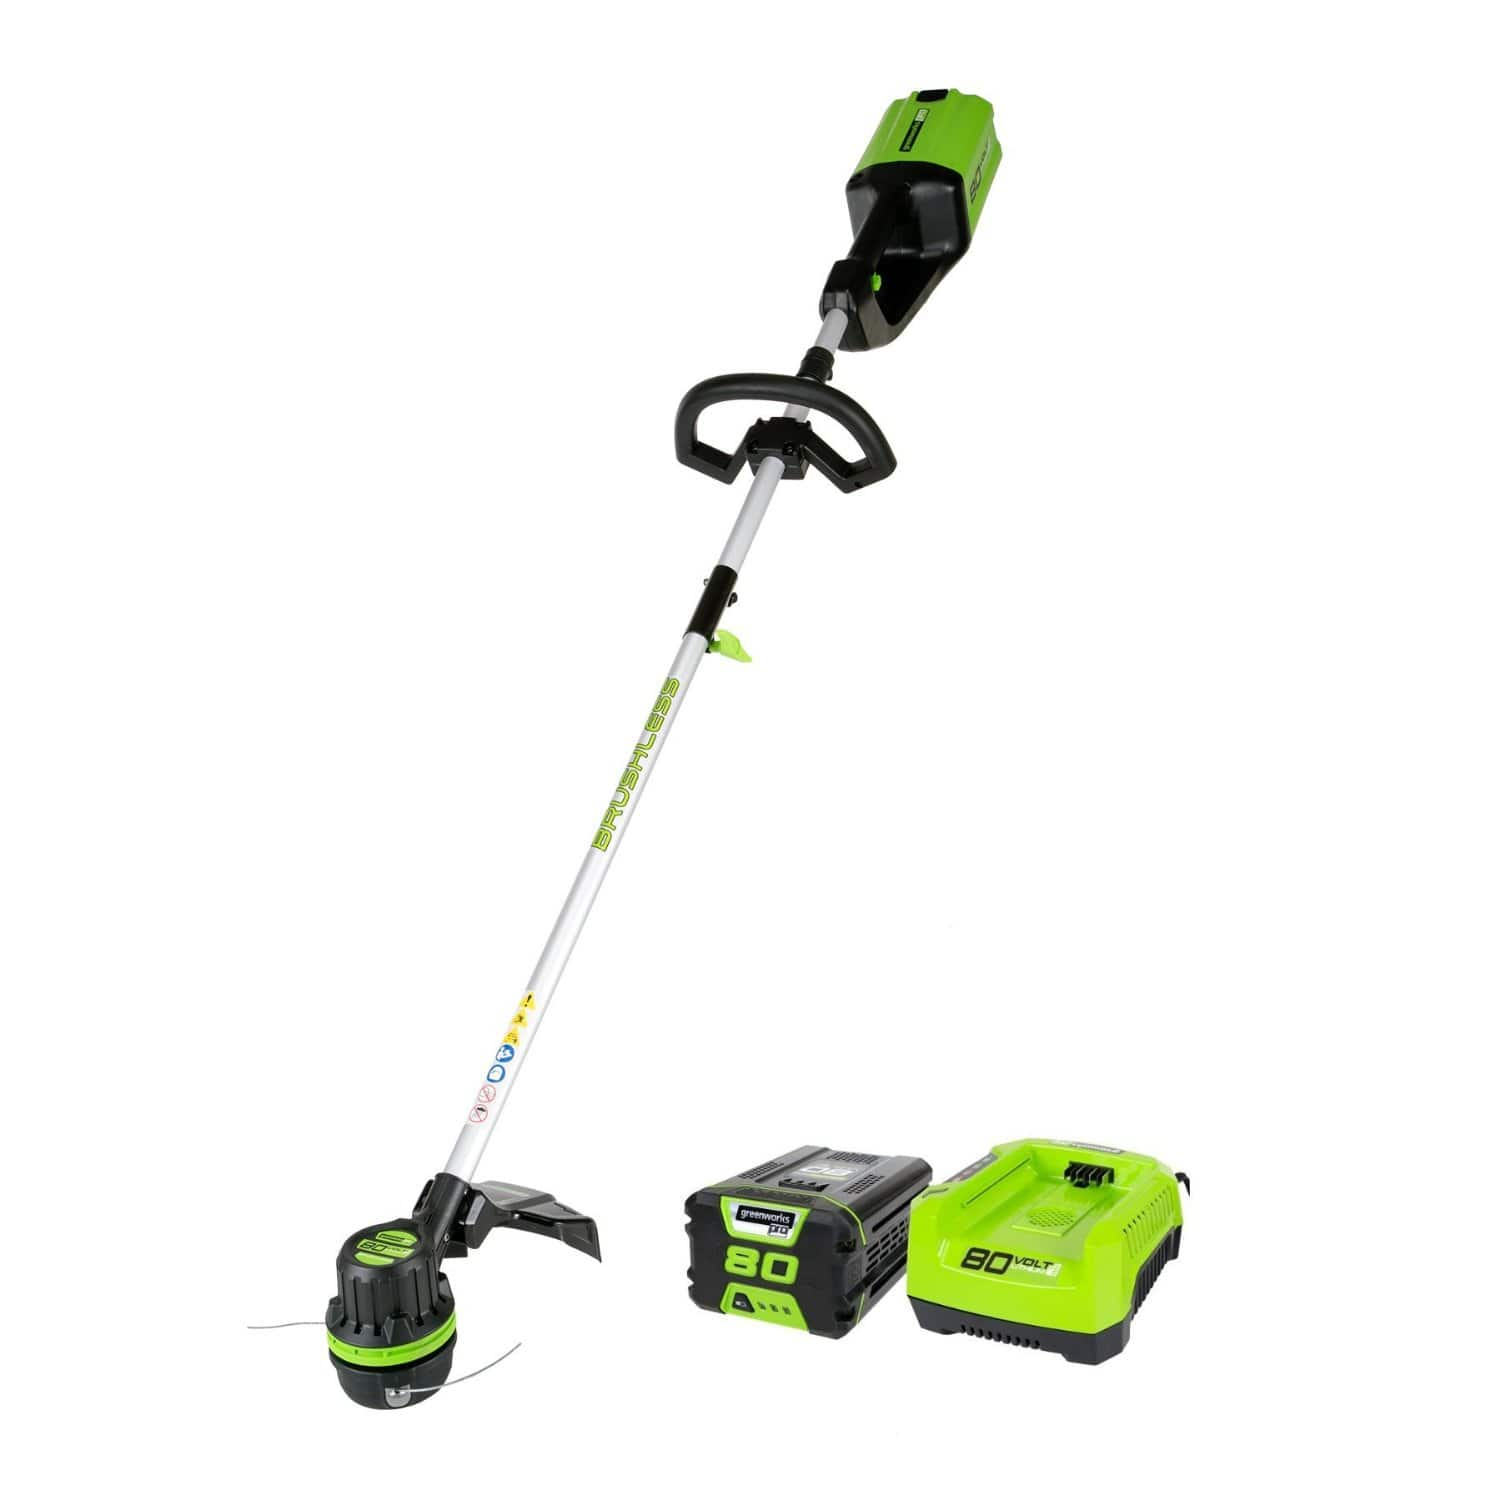 $81 GreenWorks Pro ST80L210 80V 16-Inch Cordless String Trimmer, 2Ah Battery and Charger Included